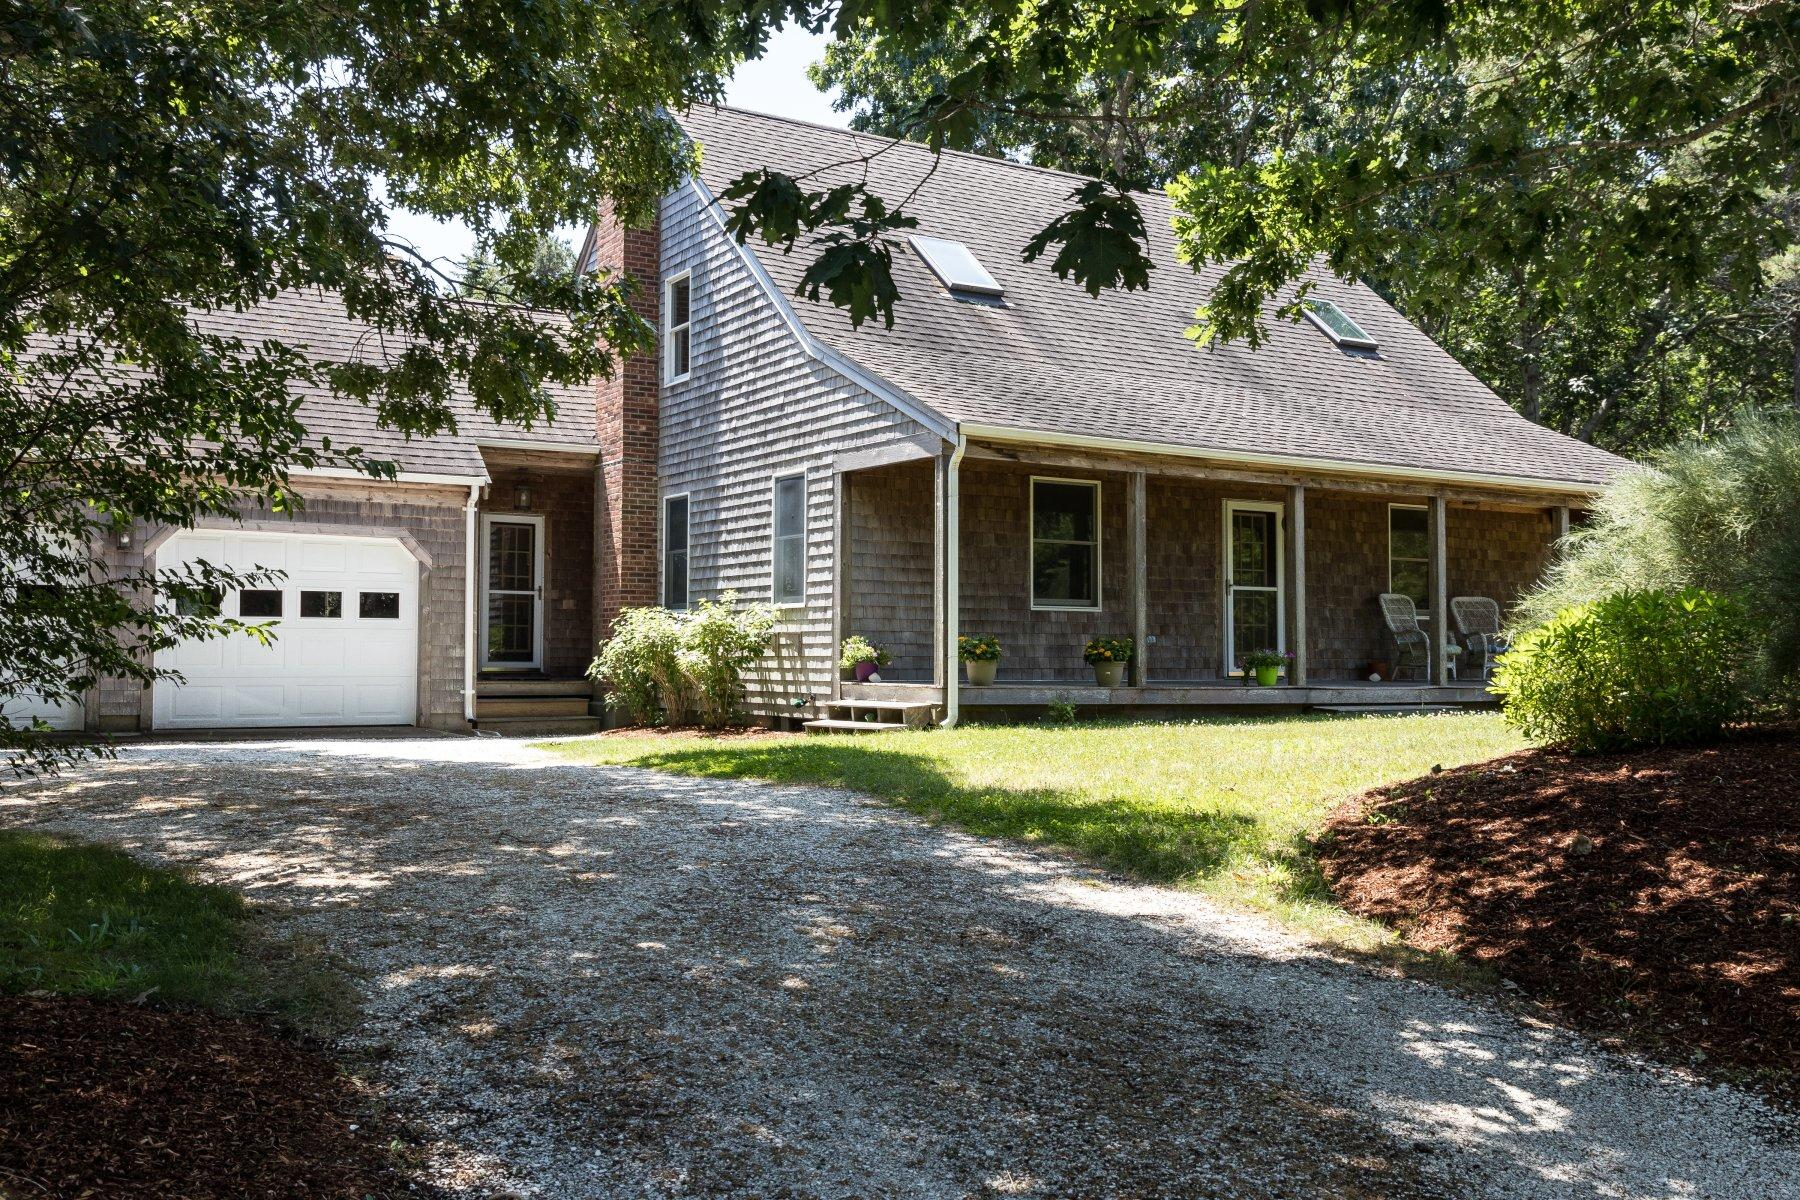 Single Family Homes for Sale at 155 Chequessett Neck Road, Wellfleet, MA 155 Chequessett Neck Road Wellfleet, Massachusetts 02667 United States